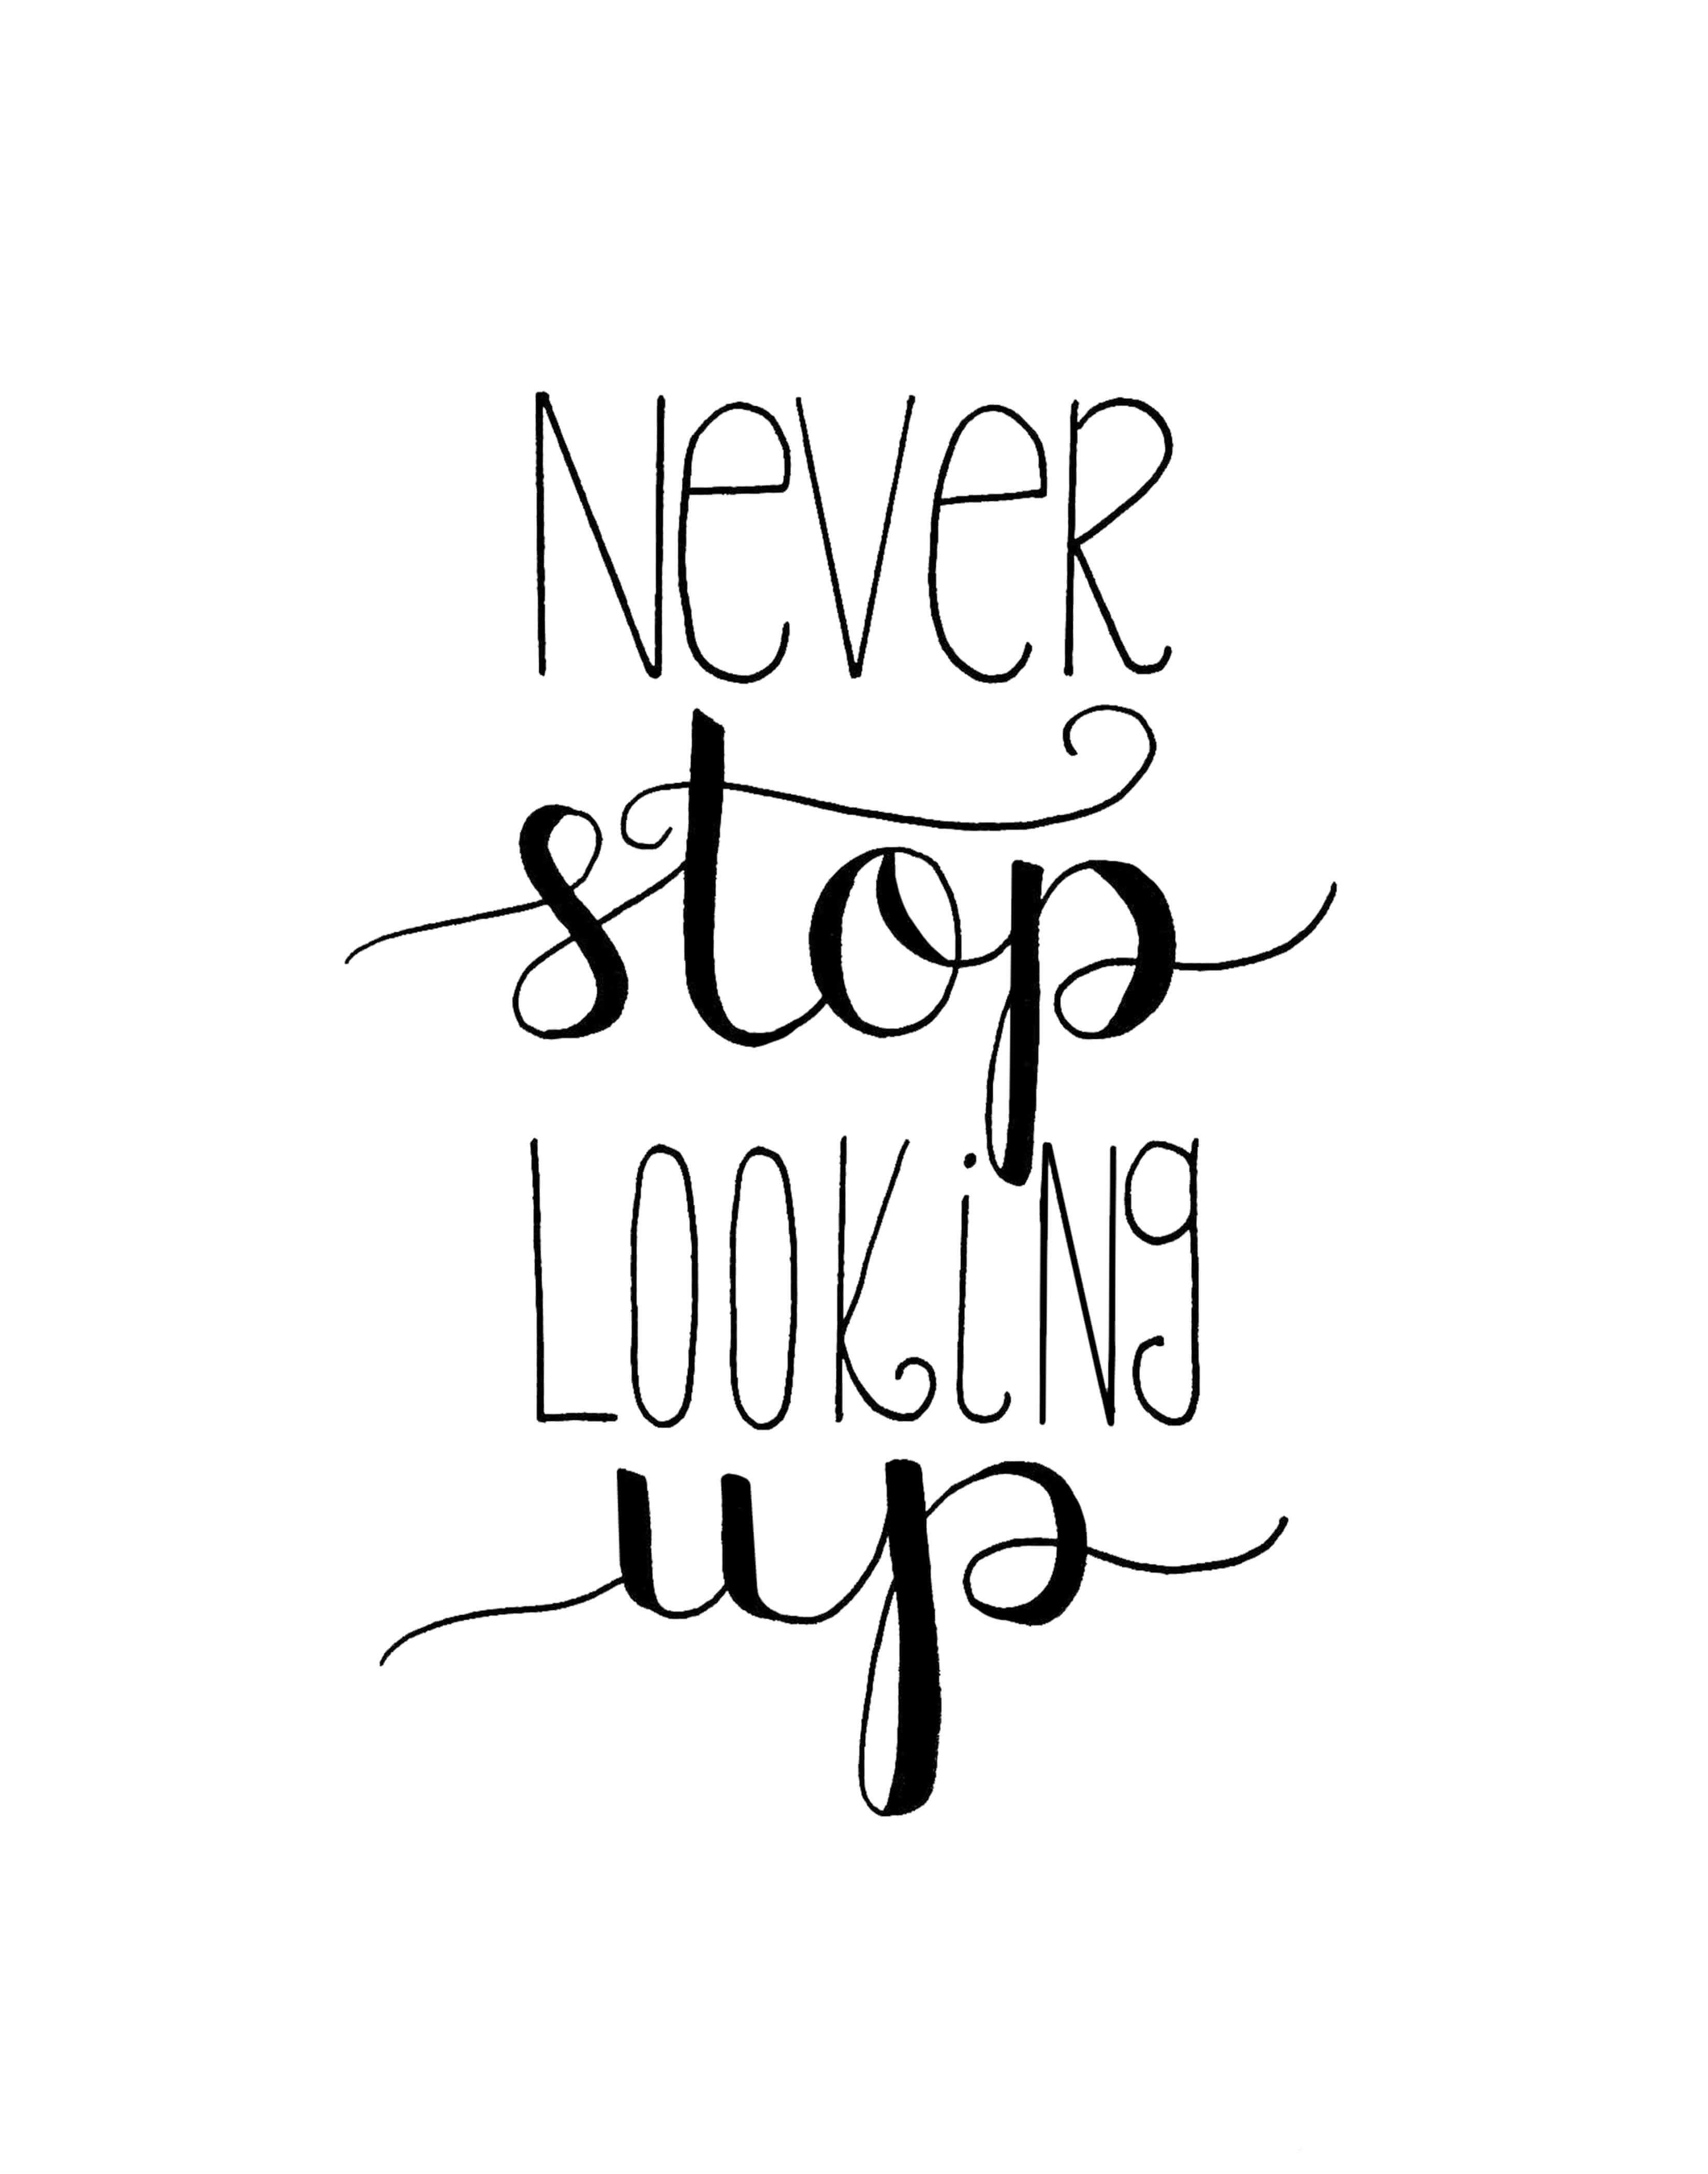 never stop looking up hand lettered artwork